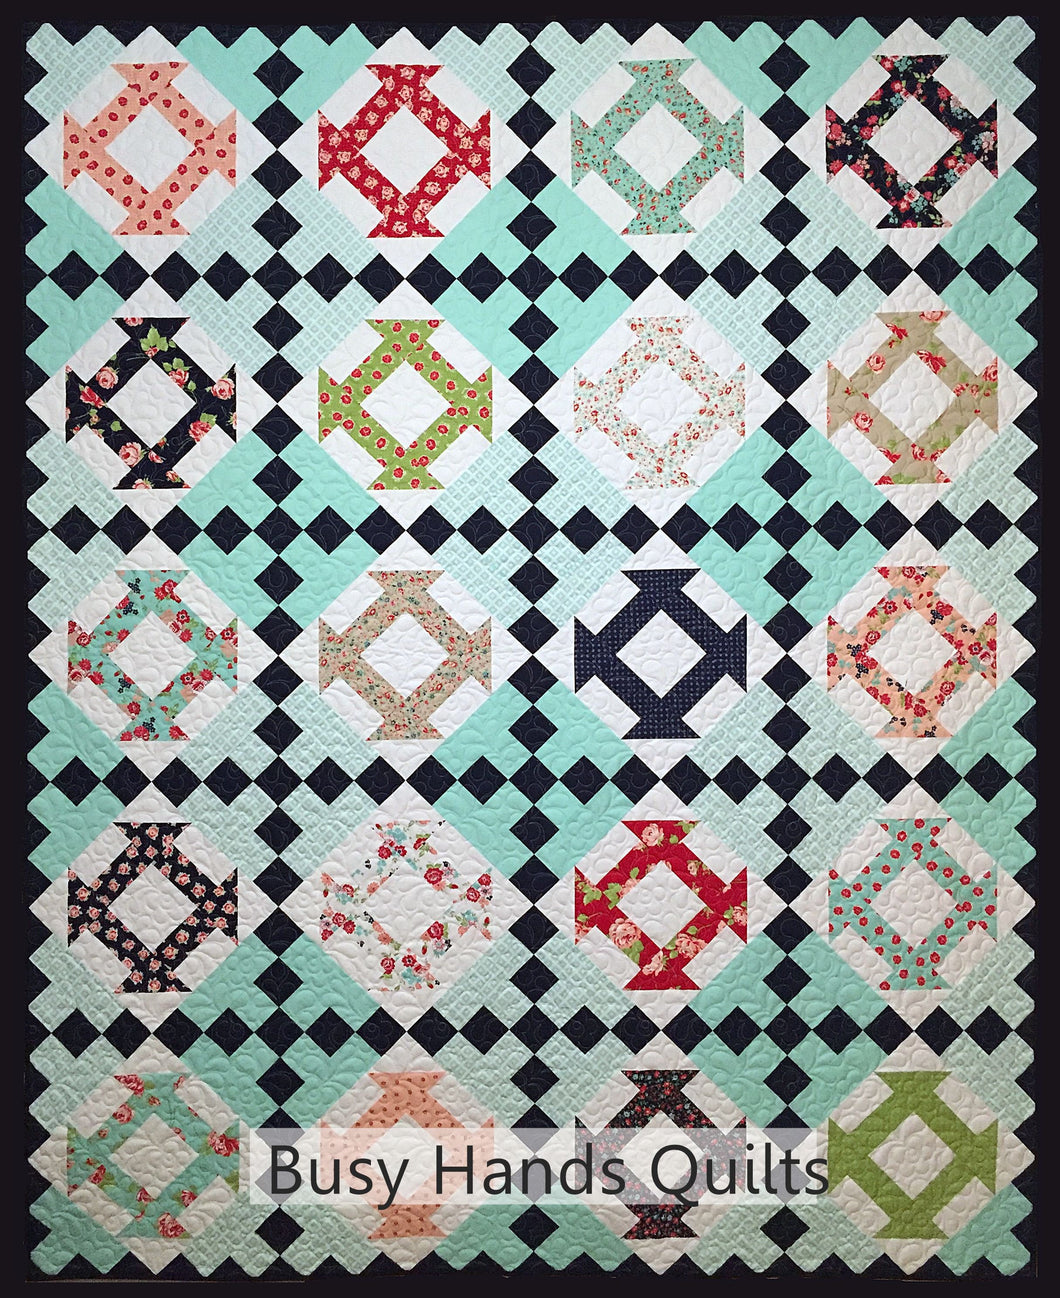 Ava's Garden Quilt Pattern PDF - Busy Hands Quilts